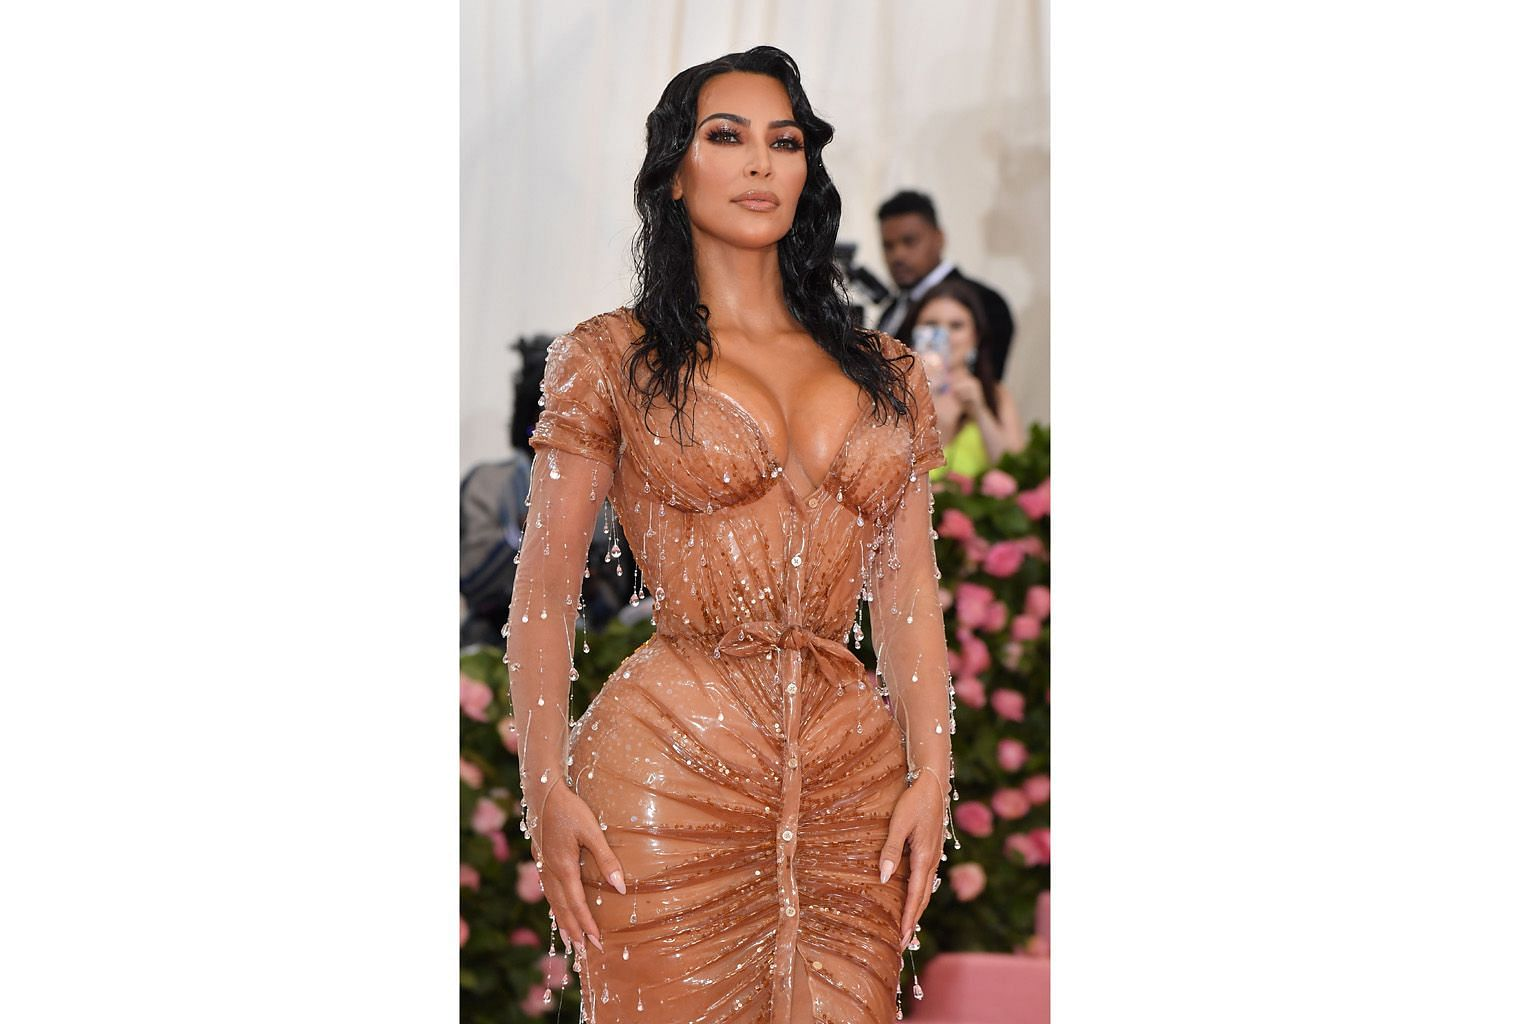 Reality television star Kim Kardashian West recently announced plans to launch a new line of bodywear named and trademarked Kimono, but later said she would launch her brand under a different name after receiving a letter from Kyoto's mayor asking he